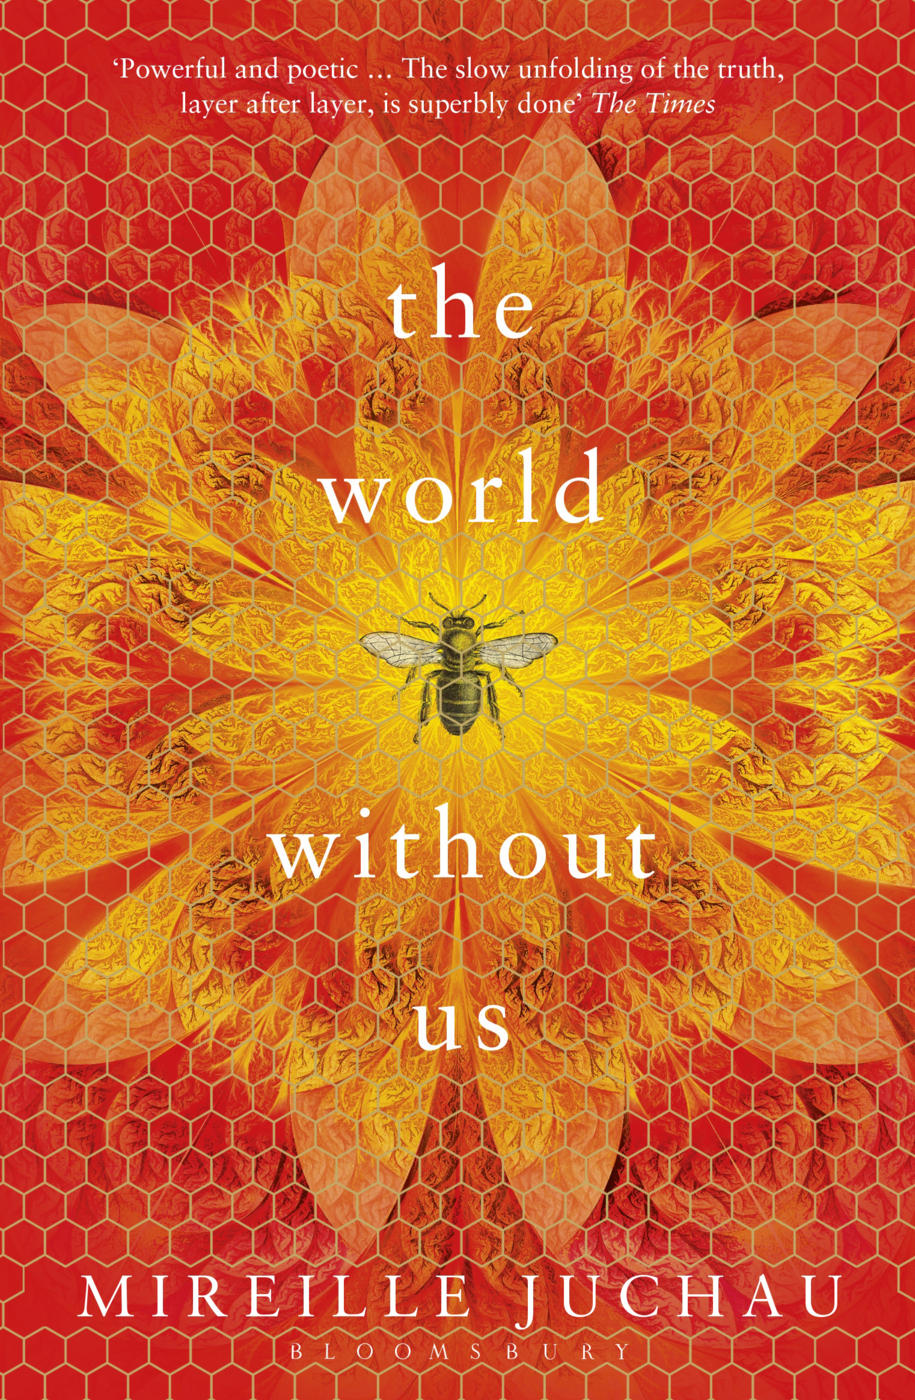 Cover image of the book 'The World Without Us' by Mireille Juchau